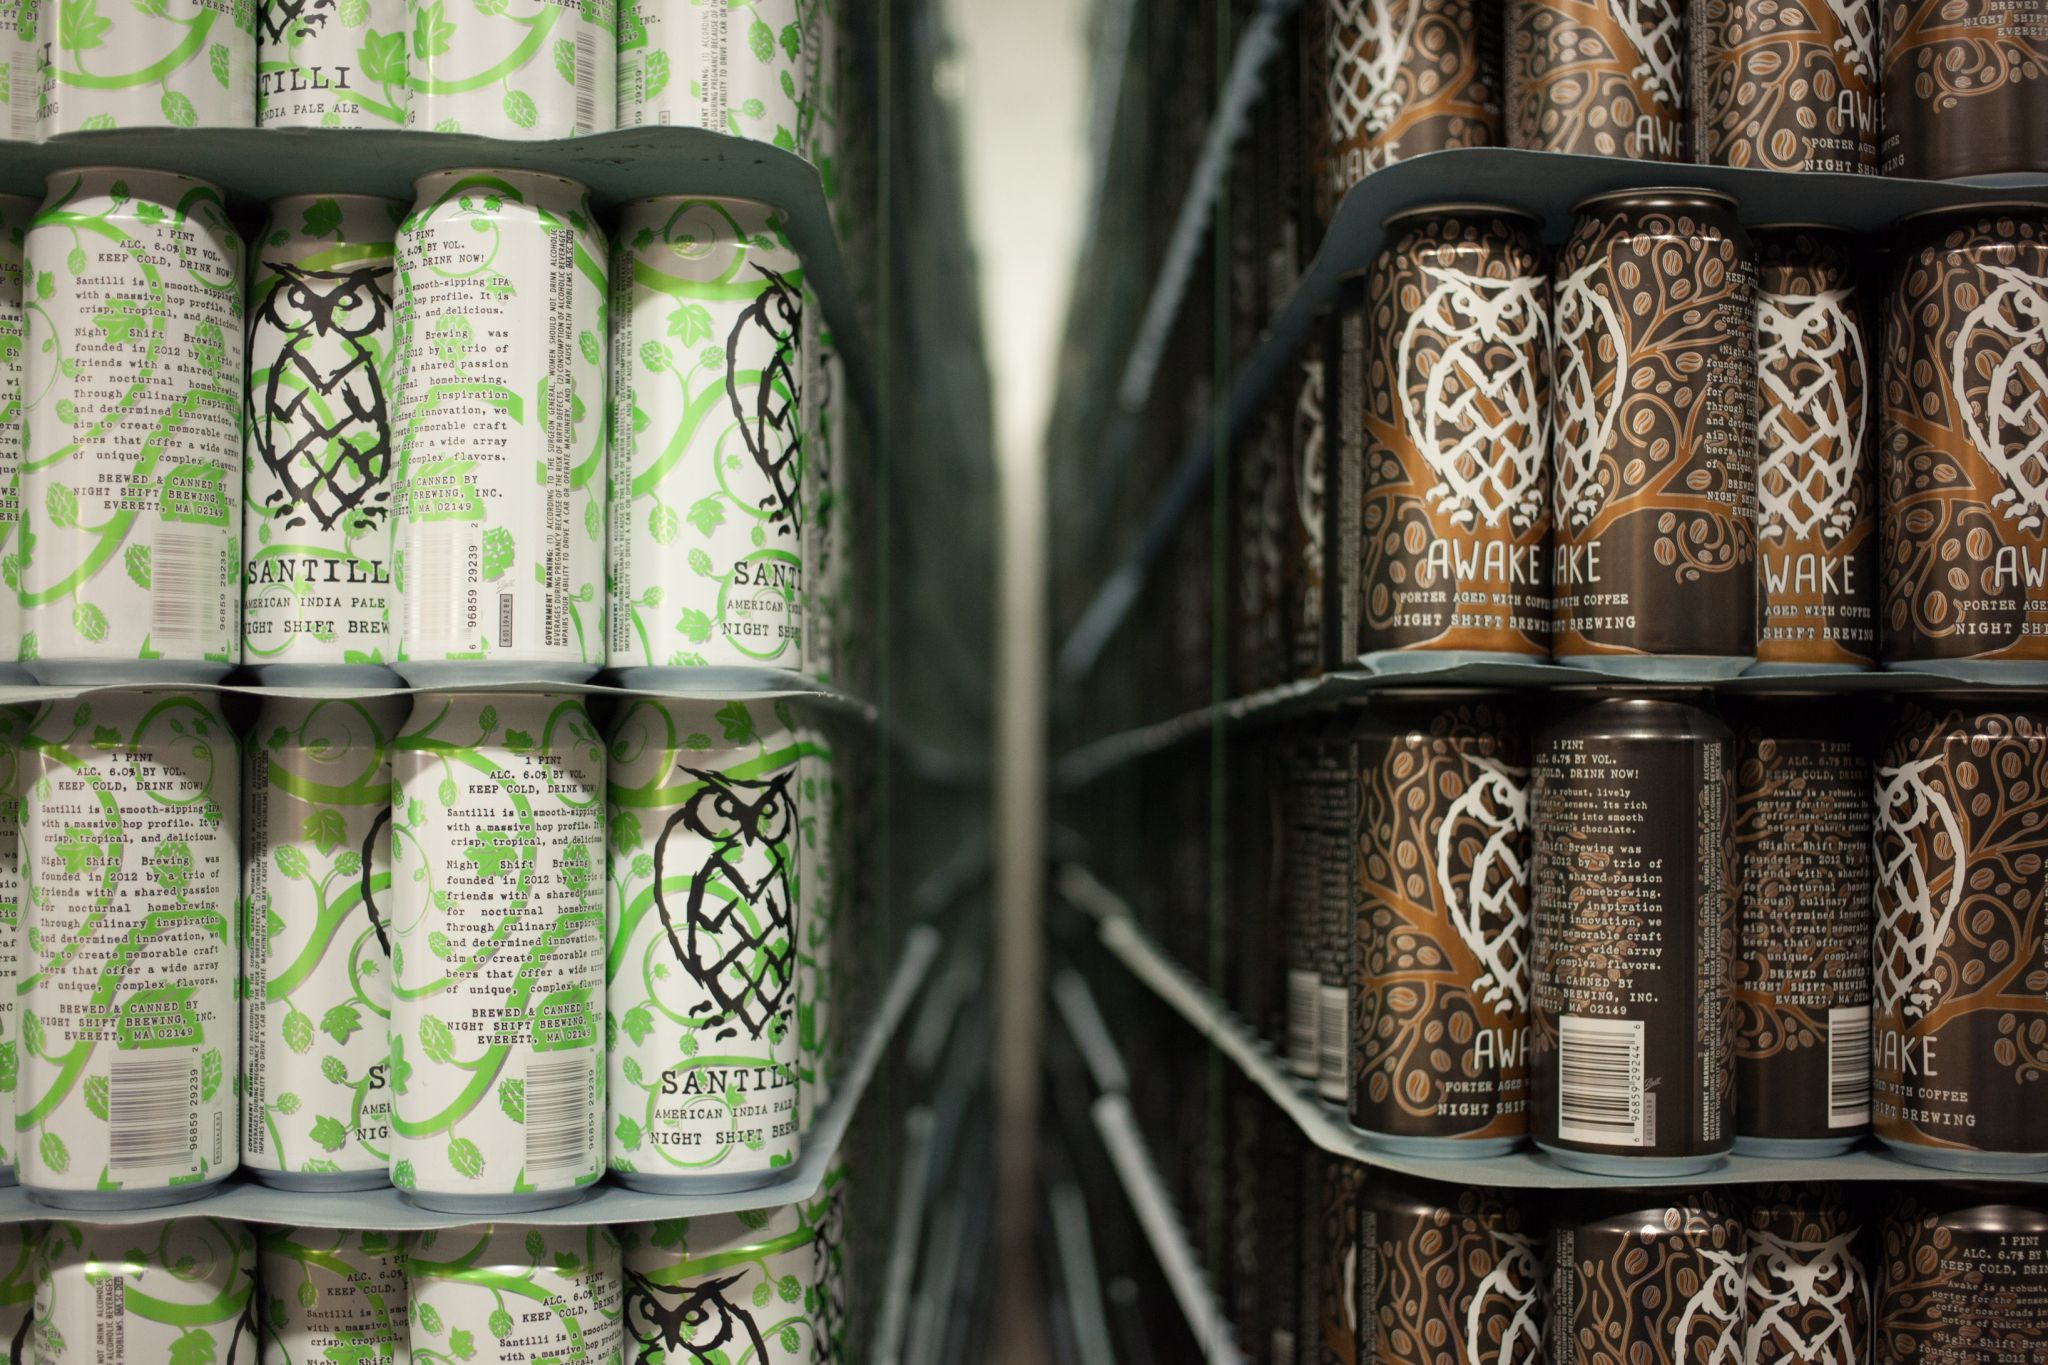 Empty beer cans of Santilli and Awake at Night Shift Brewing